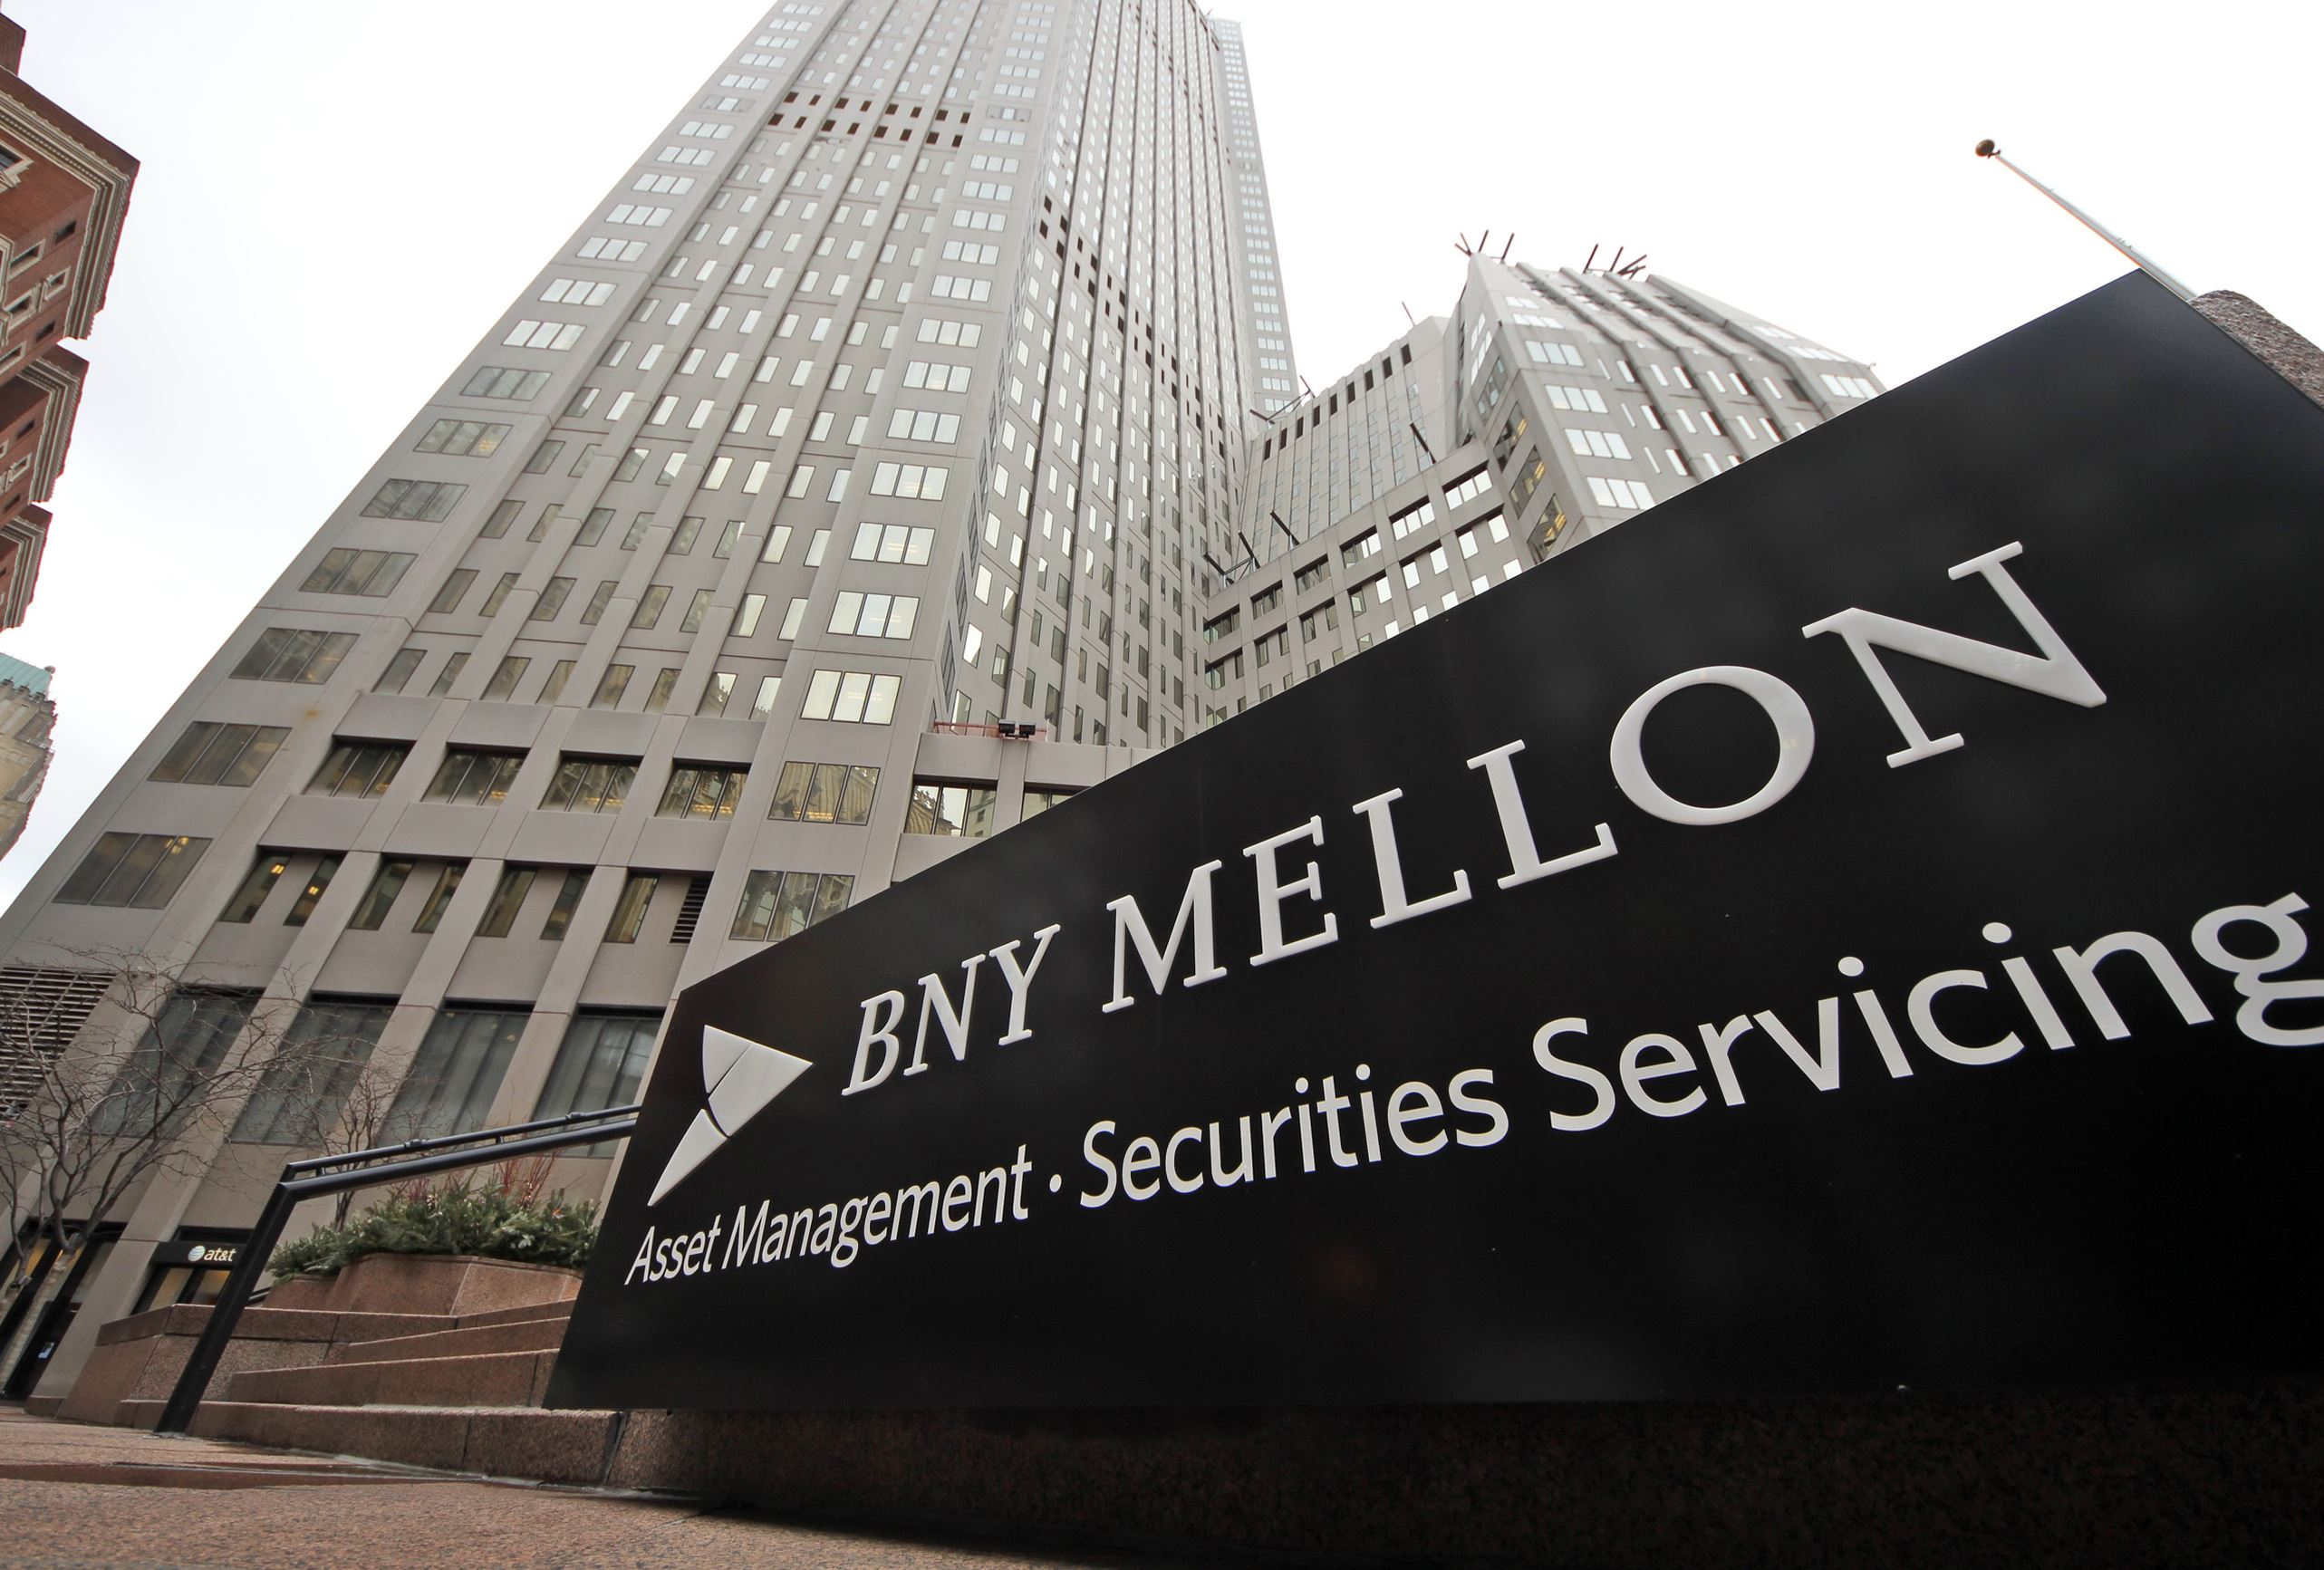 Financial Stock in action: The Bank of New York Mellon Corporation's (BK)